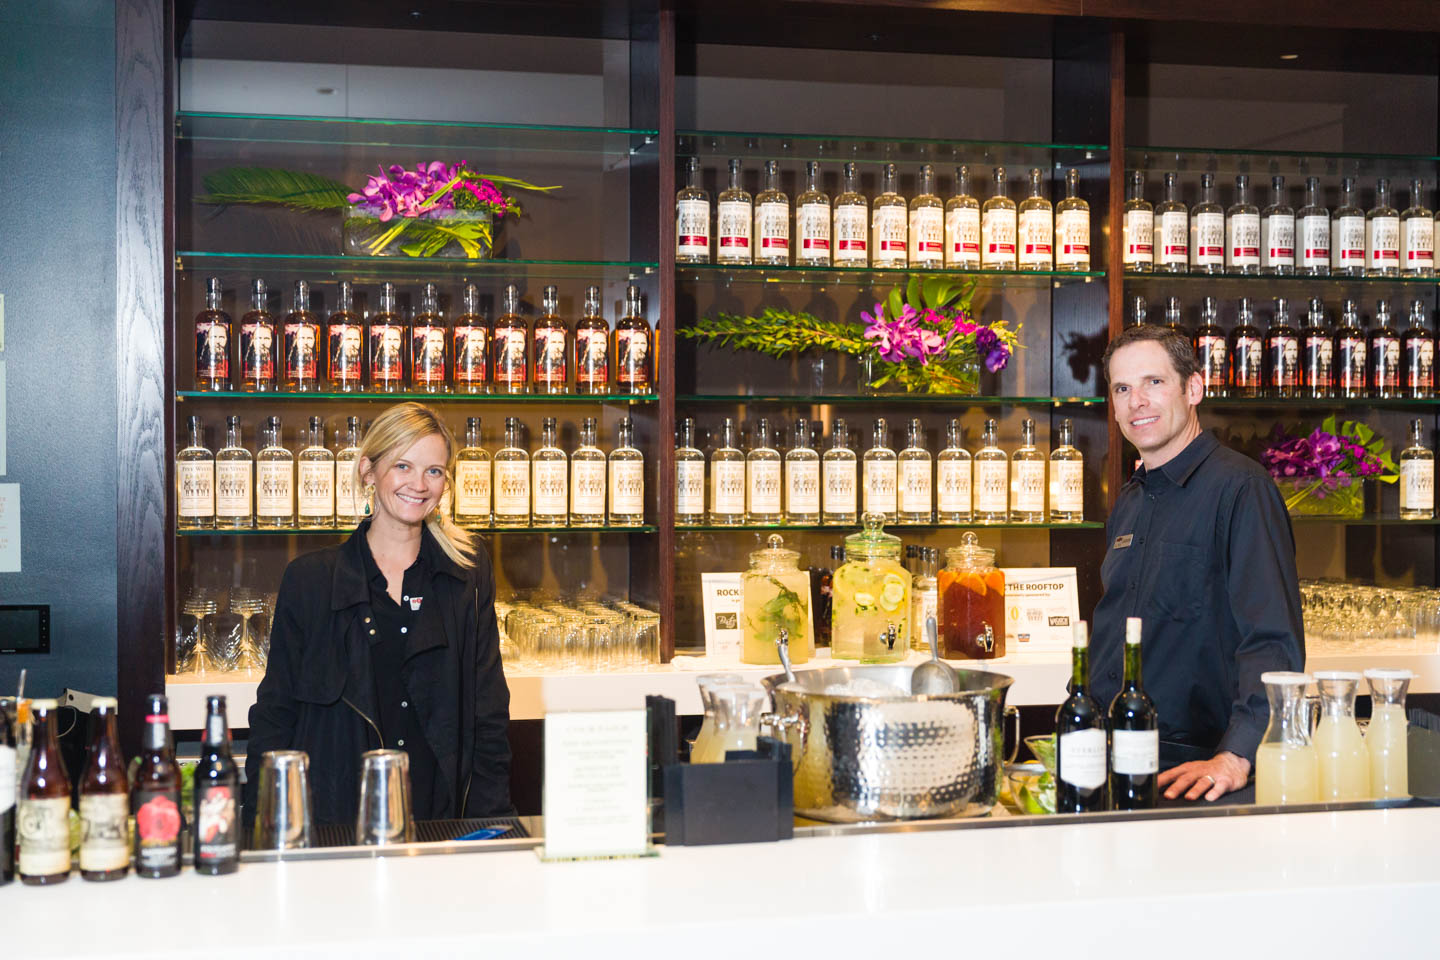 Bartenders or mixologist and they're ready to make your drink